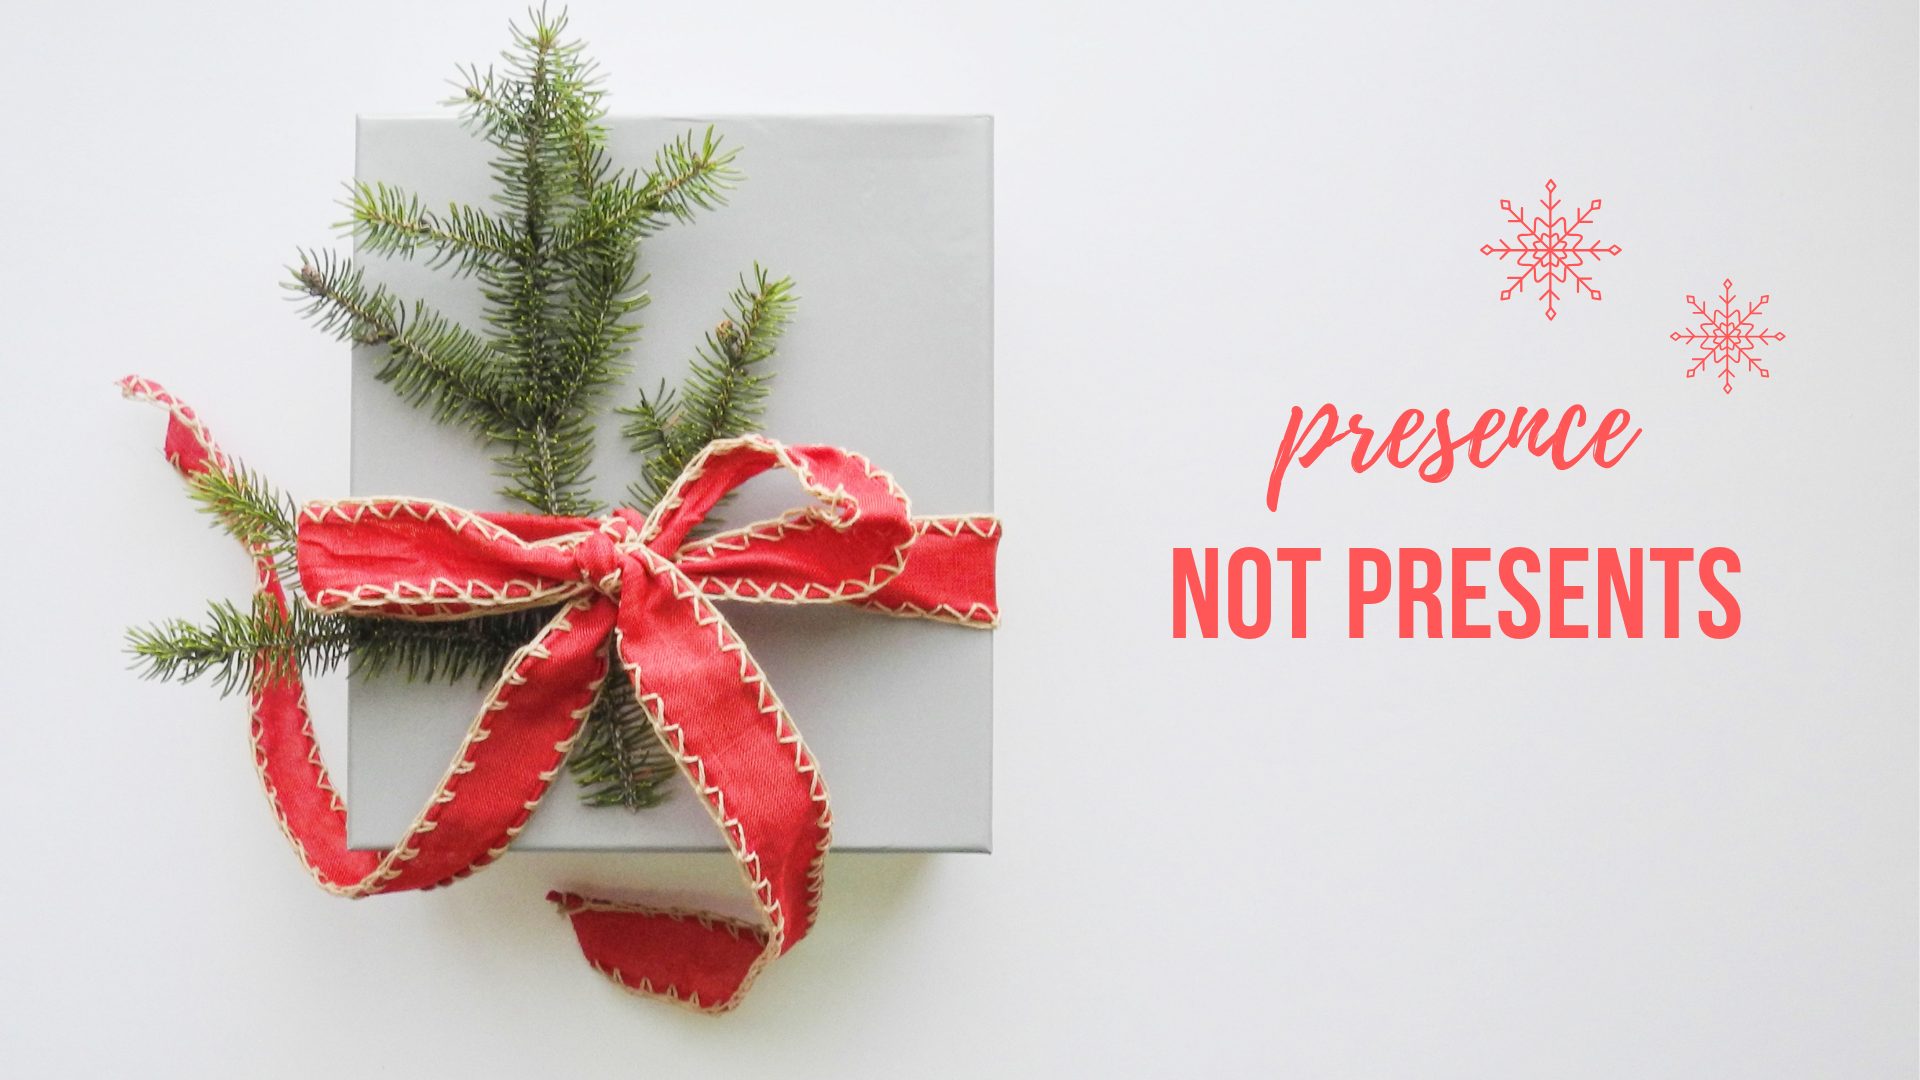 Presence, not presents - digital detox Christmas challenge